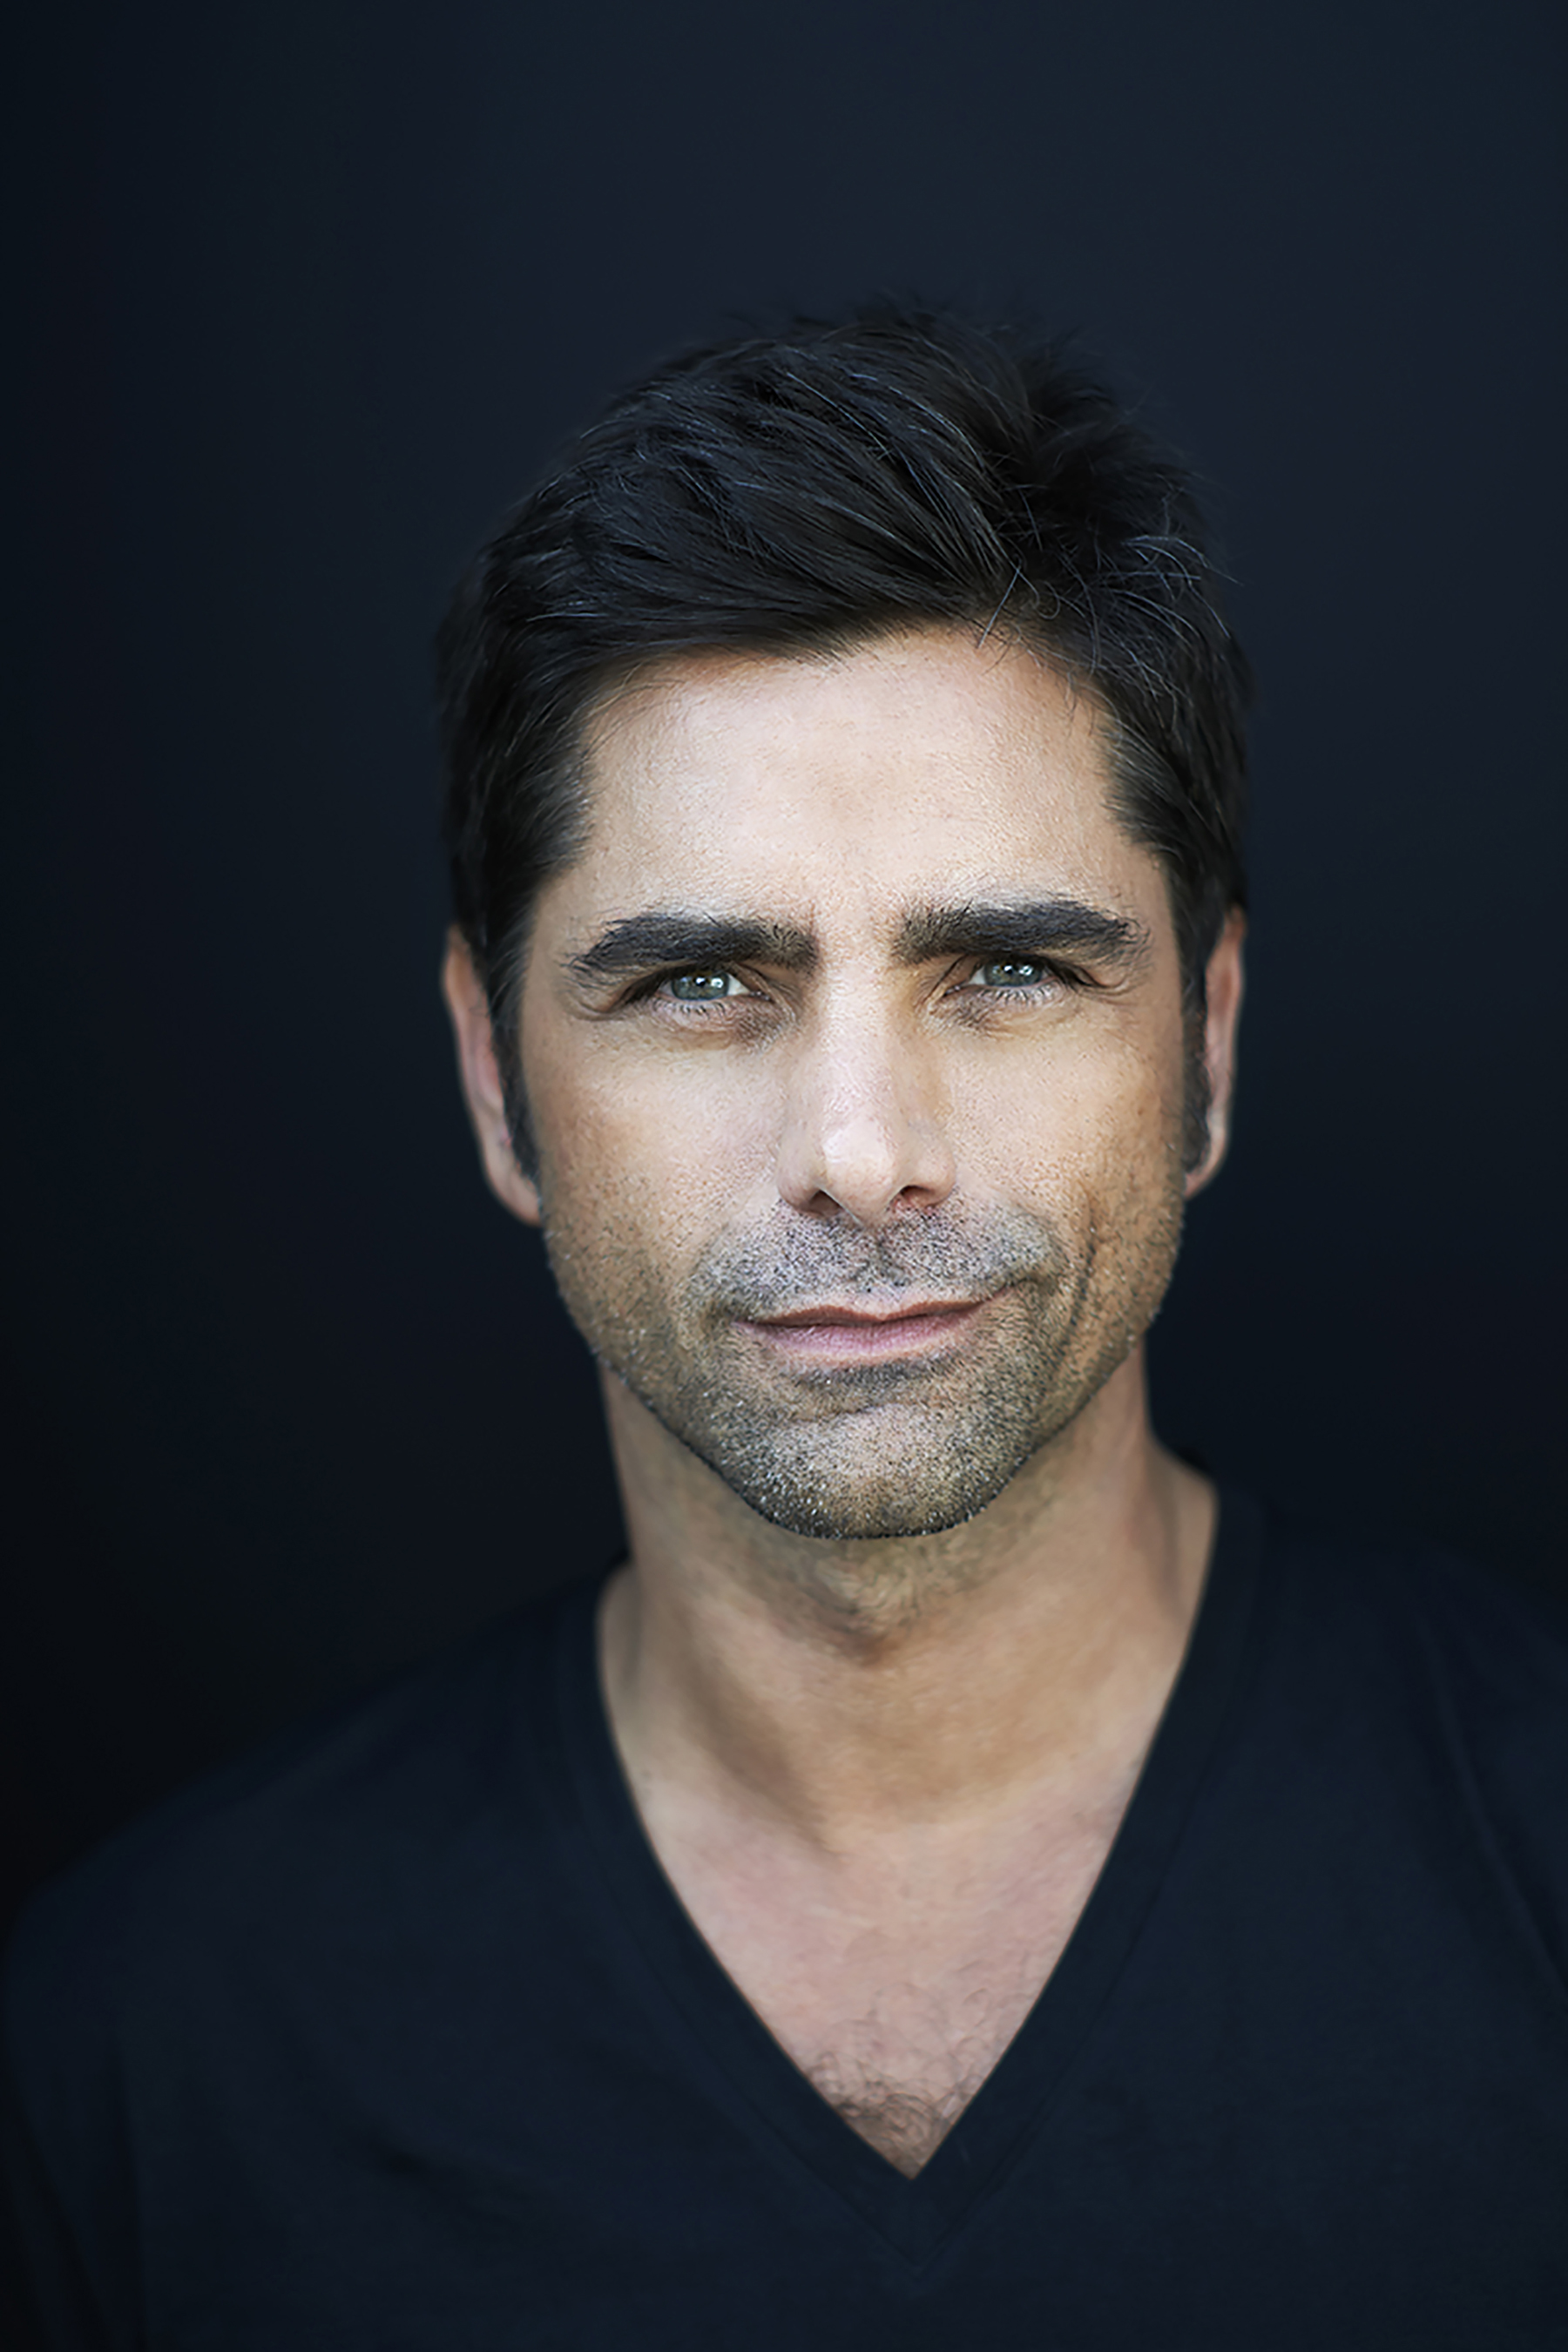 Emmy Award-nominated actor and producer John Stamos (FULLER HOUSE, SCREAM QUEENS) hosts PBS' A CAPITOL FOURTH, broadcast live from the West Lawn of the U.S. Capitol Tuesday, July 4 from 8.00 to 9:30 p.m. ET.